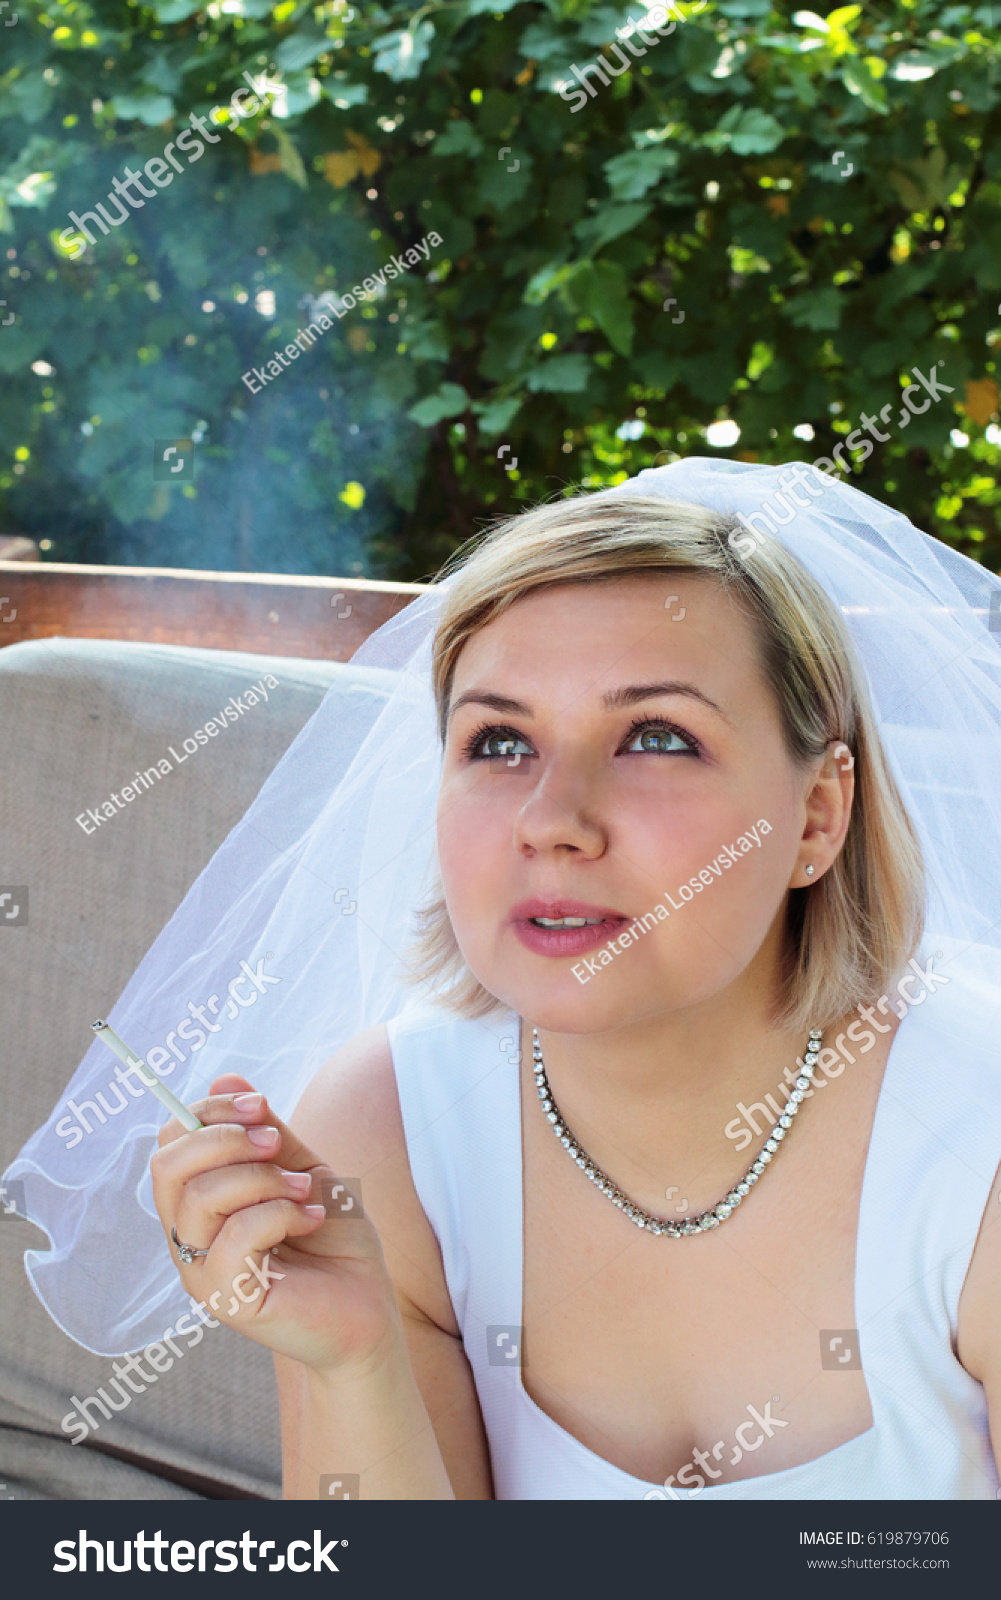 Young Nervous Sad Bride In A White Wedding Dress Smoking Cigarette Outdoors Against Background: Smoking Brides Wedding Dress At Websimilar.org